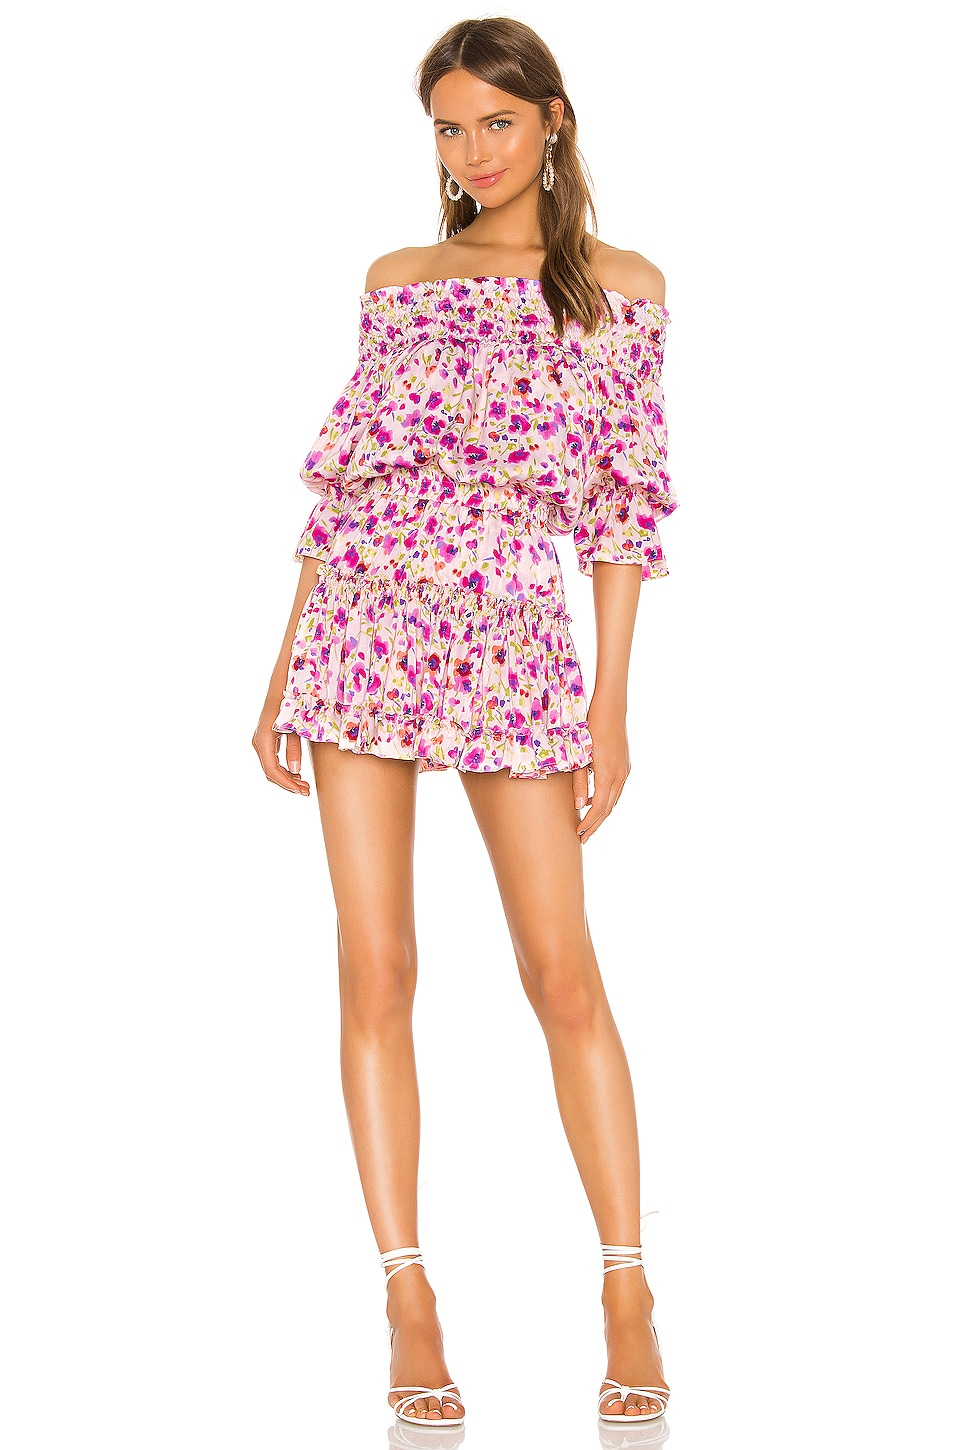 MISA Los Angeles X REVOLVE Darla Dress in Fuchsia Floral